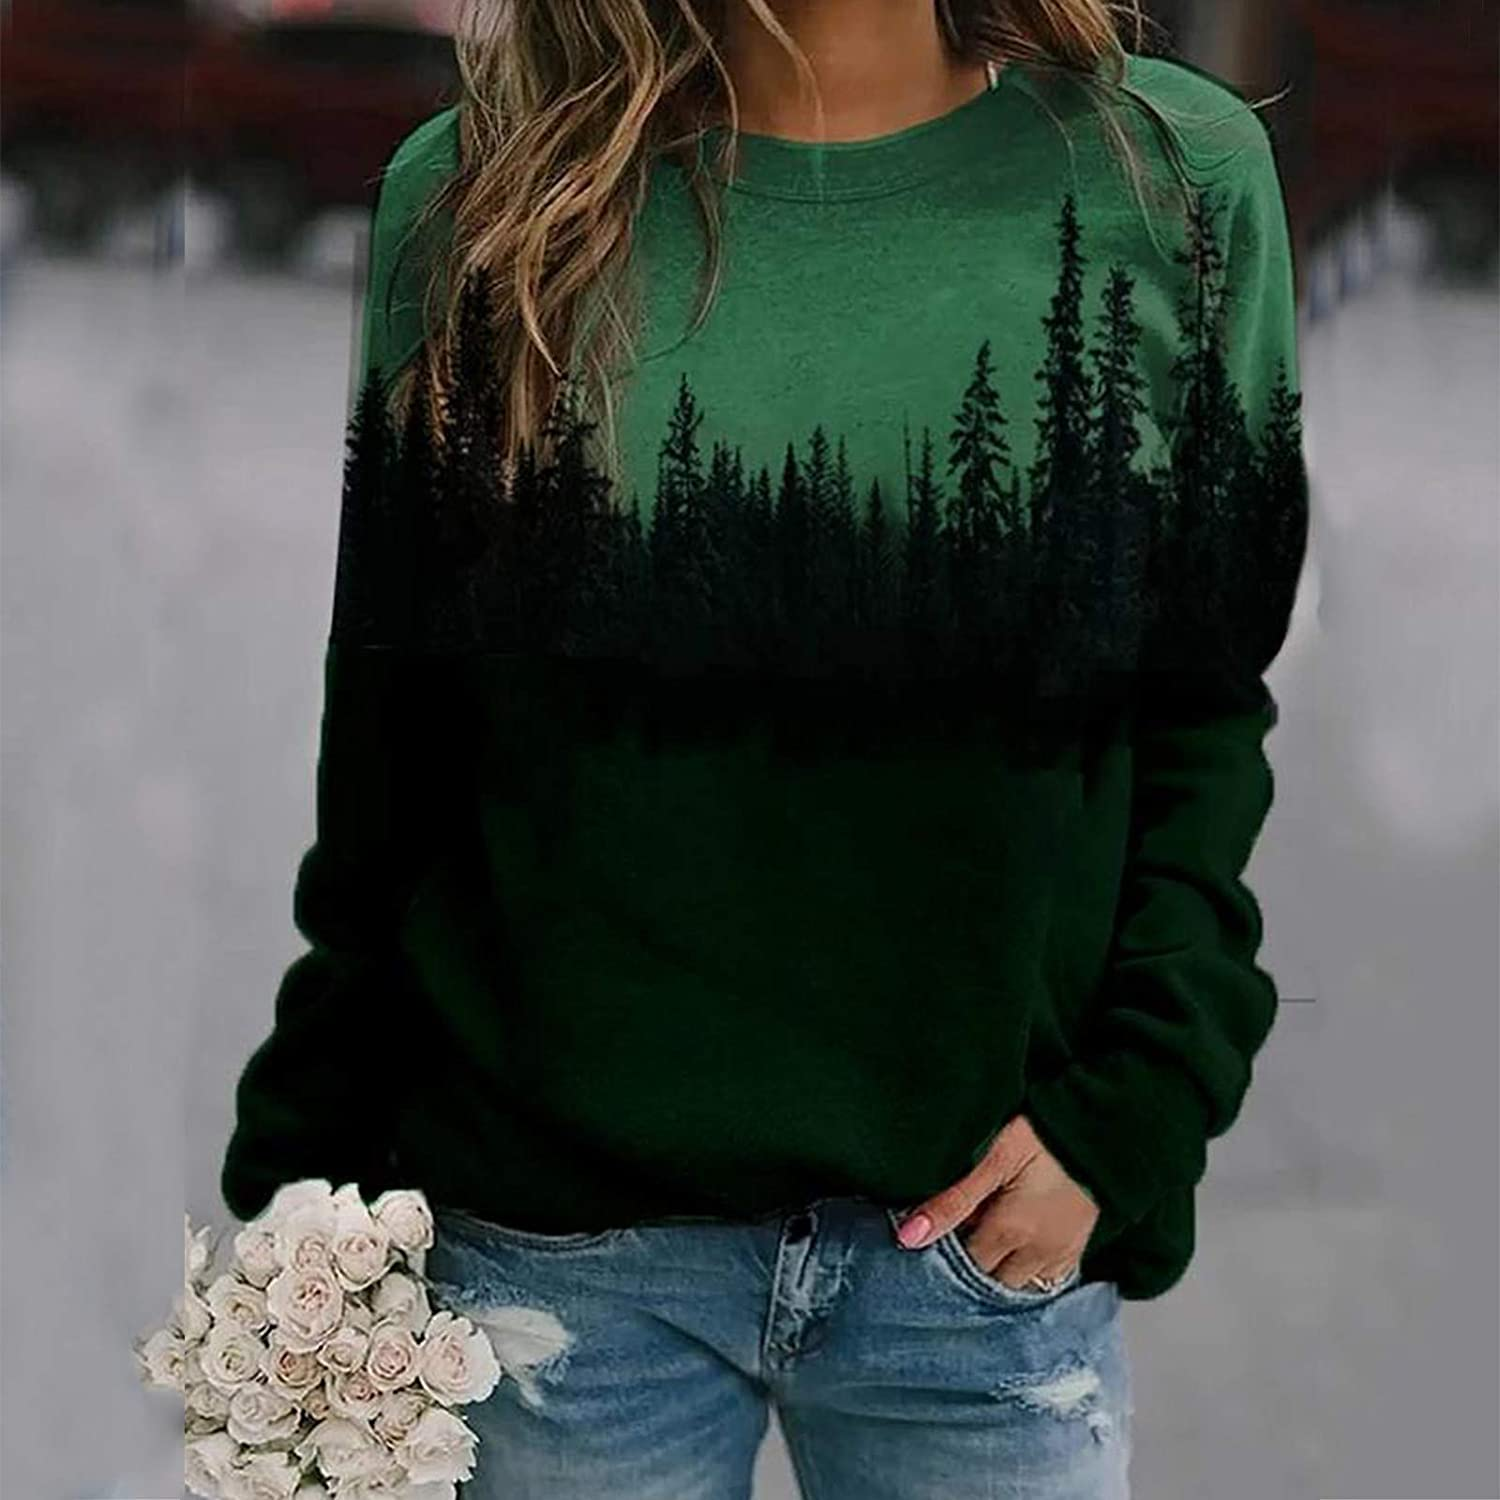 Womens Casual Pullover Tops Long Sleeve Funny Print Loose Fit Shirts Sweaters Portazai Womens Christmas Sweatshirts